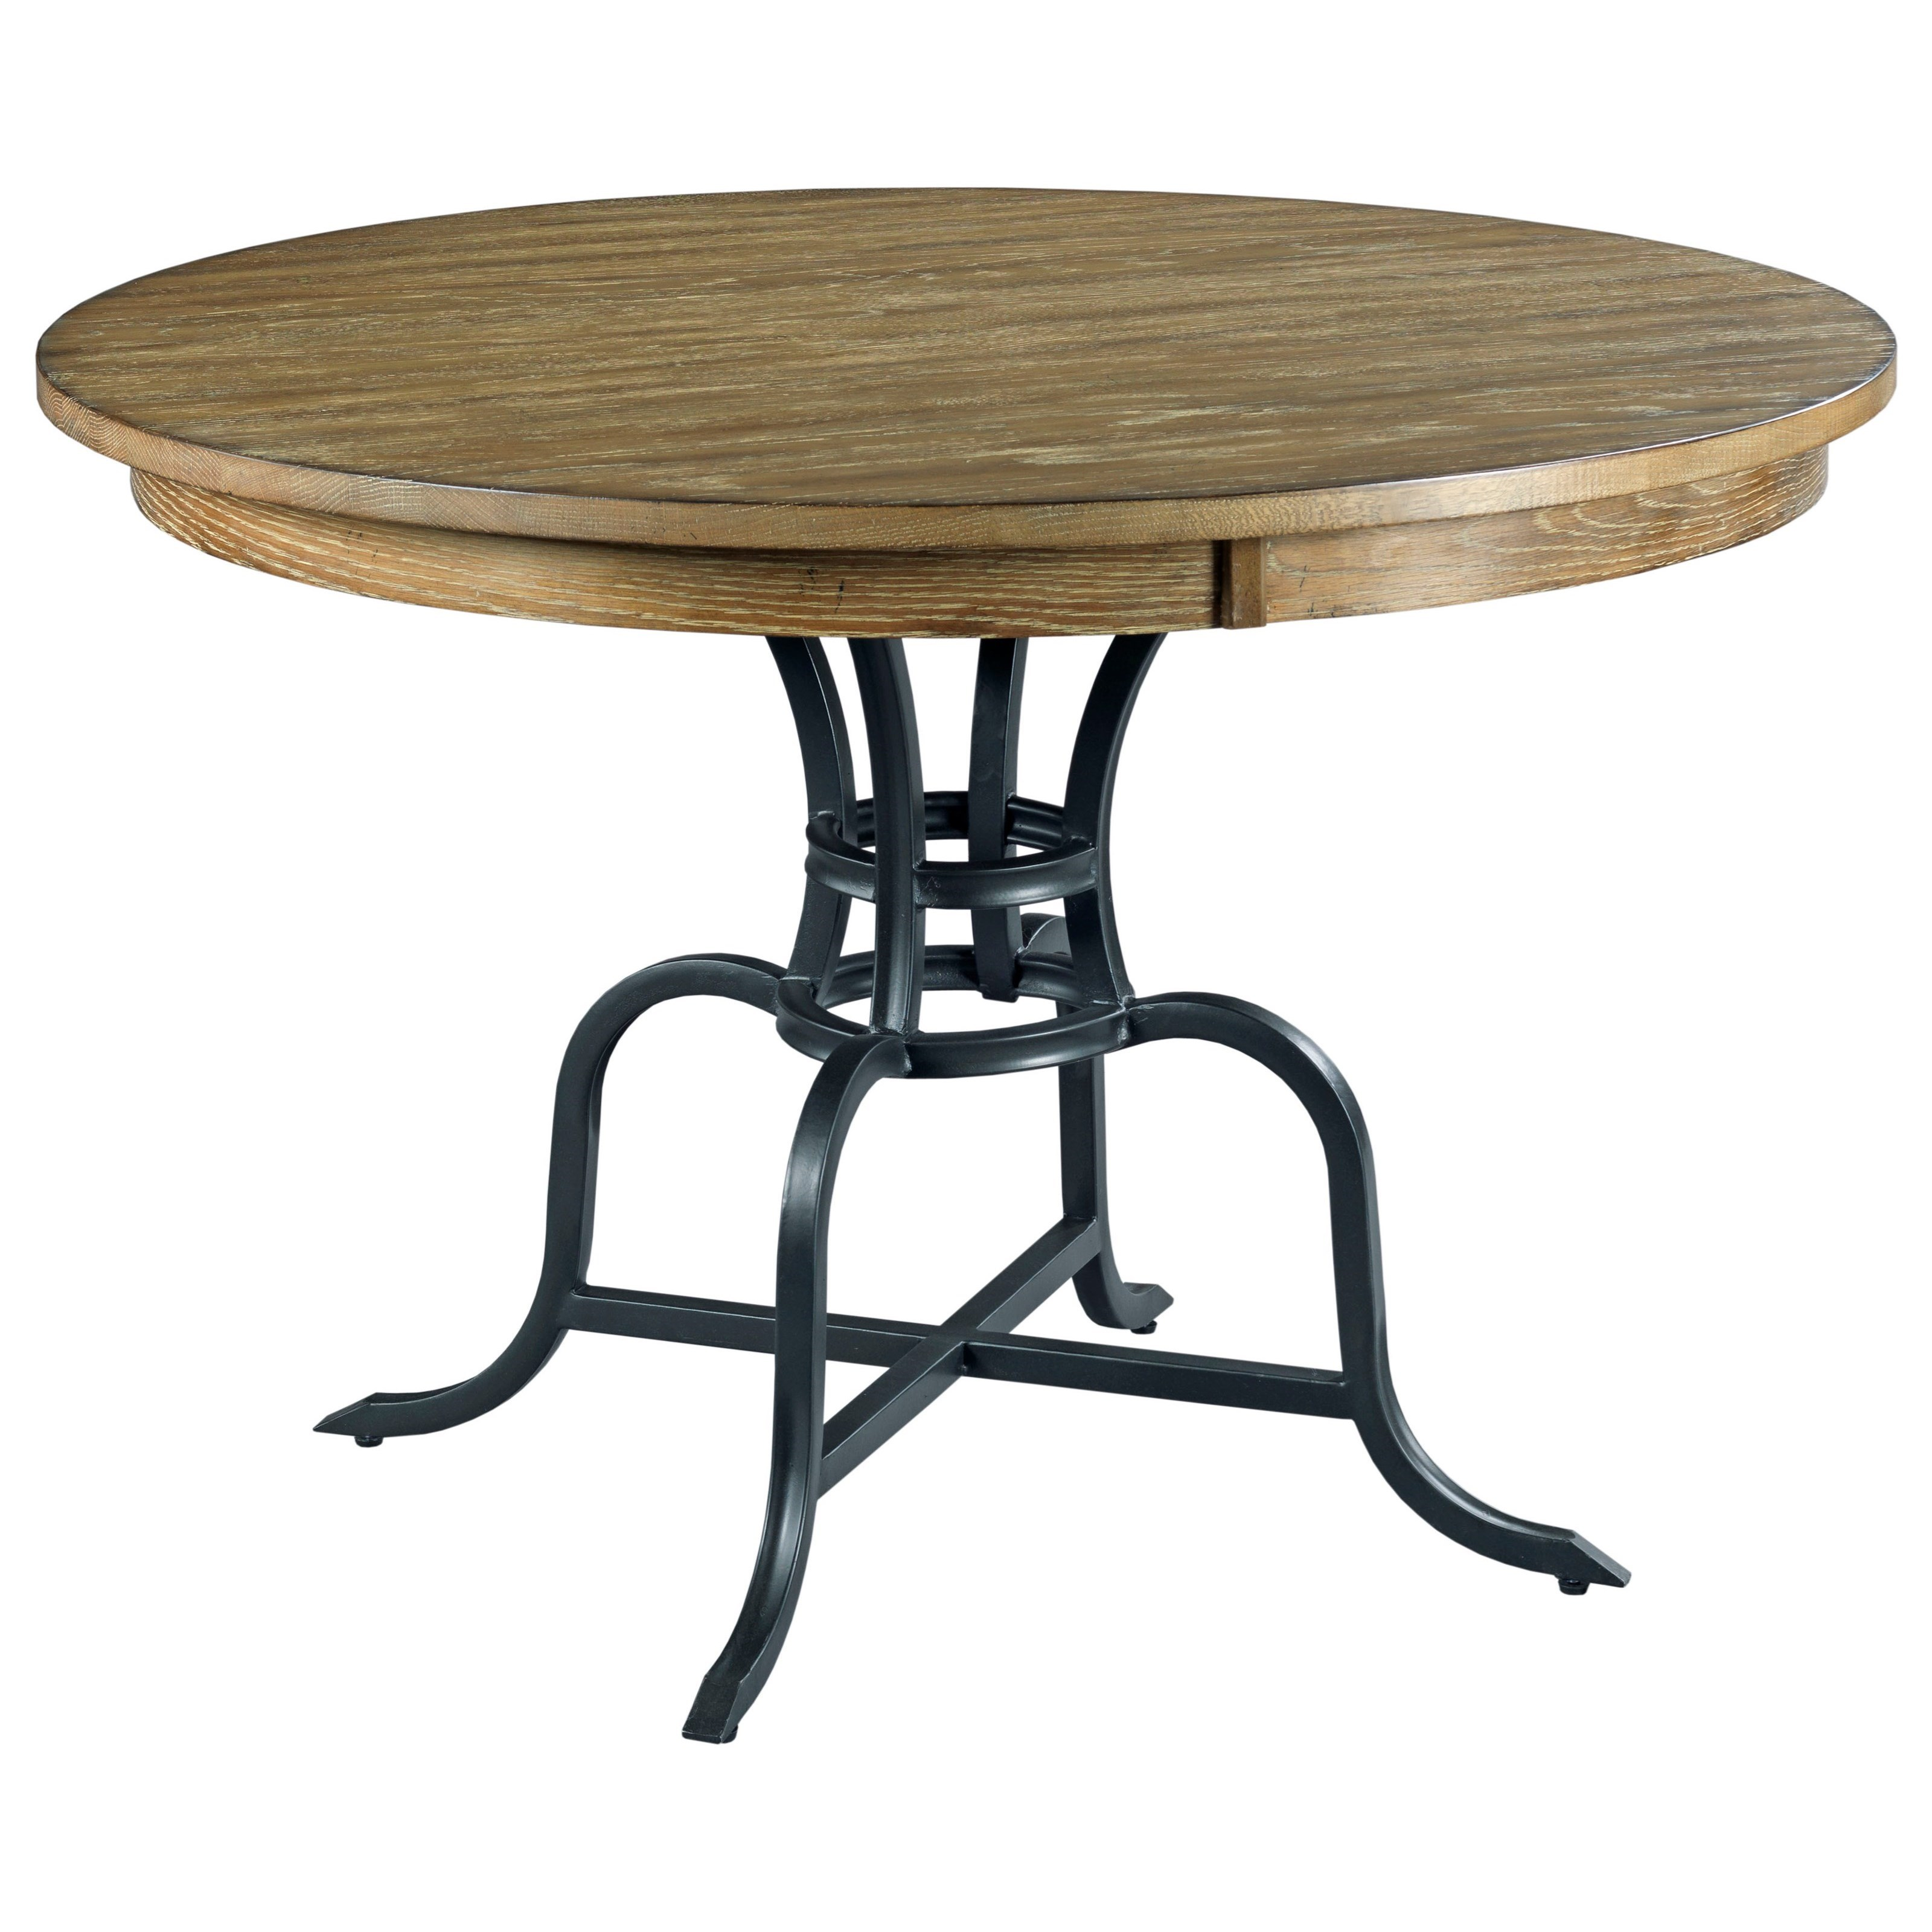 "The Nook 44"" Round Dining Table w/ Metal Base by Kincaid Furniture at Johnny Janosik"